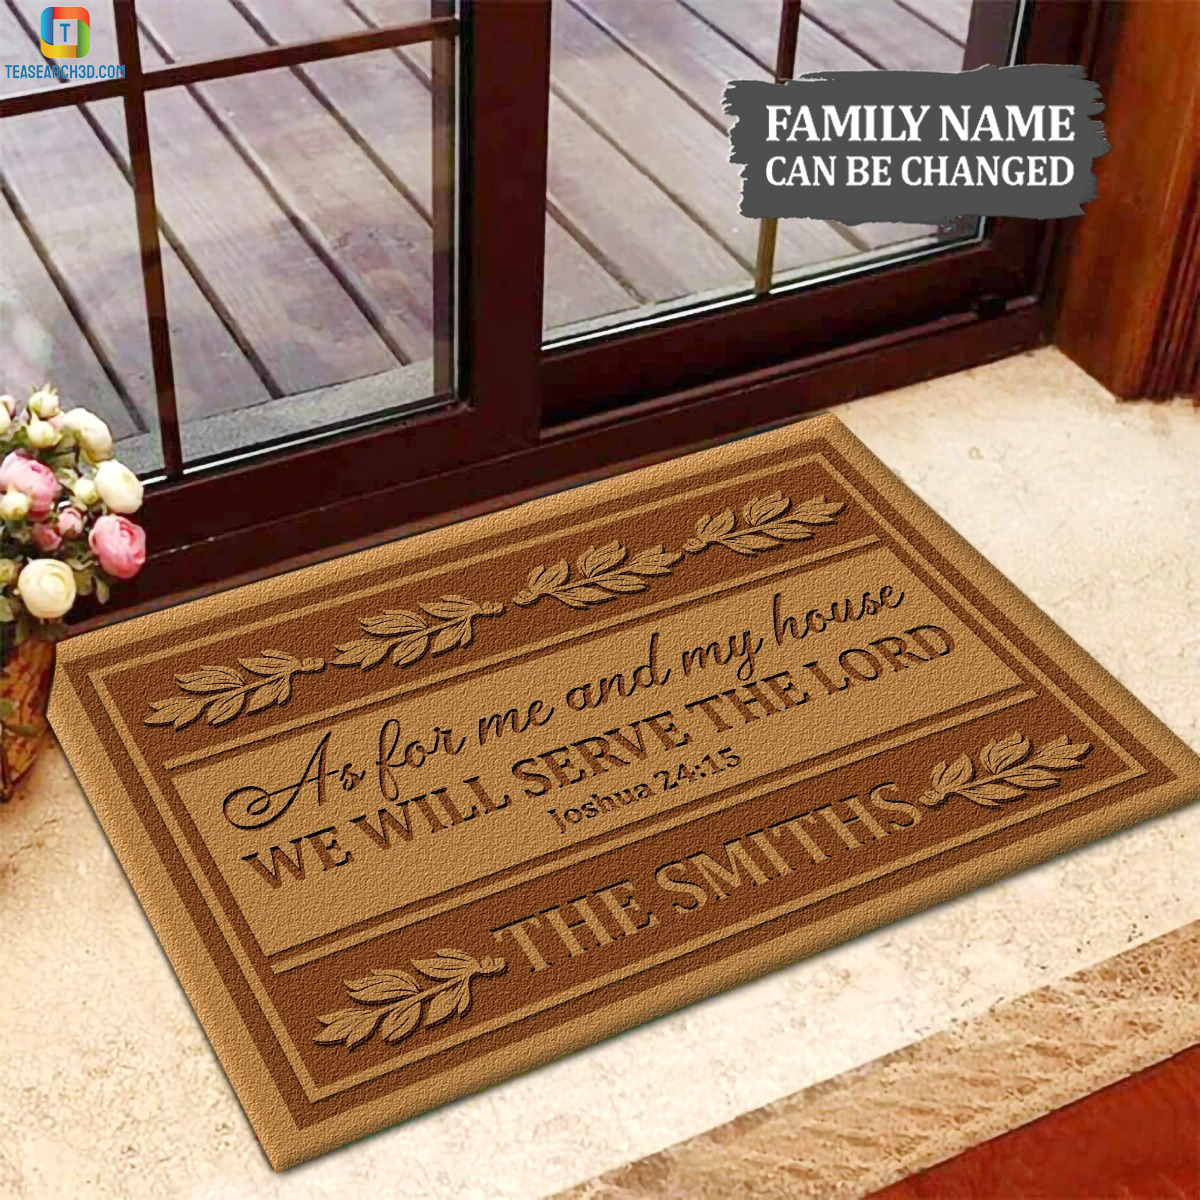 Personalized custom name as for me and my house we will serve the lord doormat